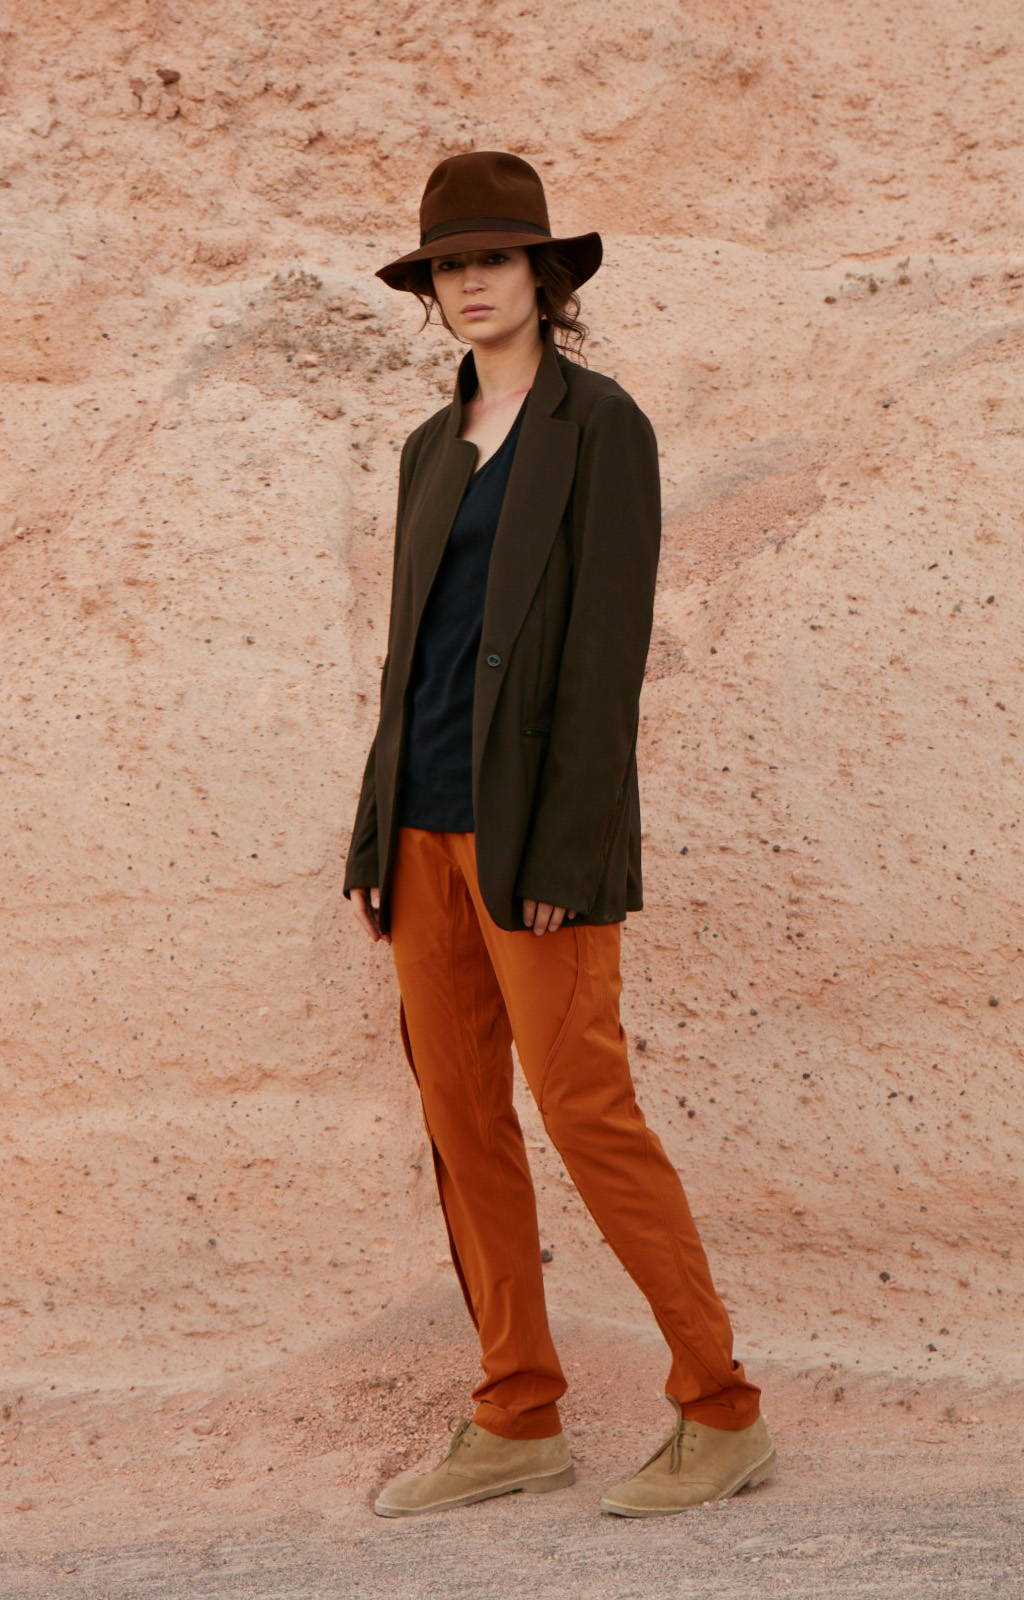 PURITY - METICULOUS CRAFTSMANSHIP, A BEAUTIFUL TRAVEL PANT GINGER